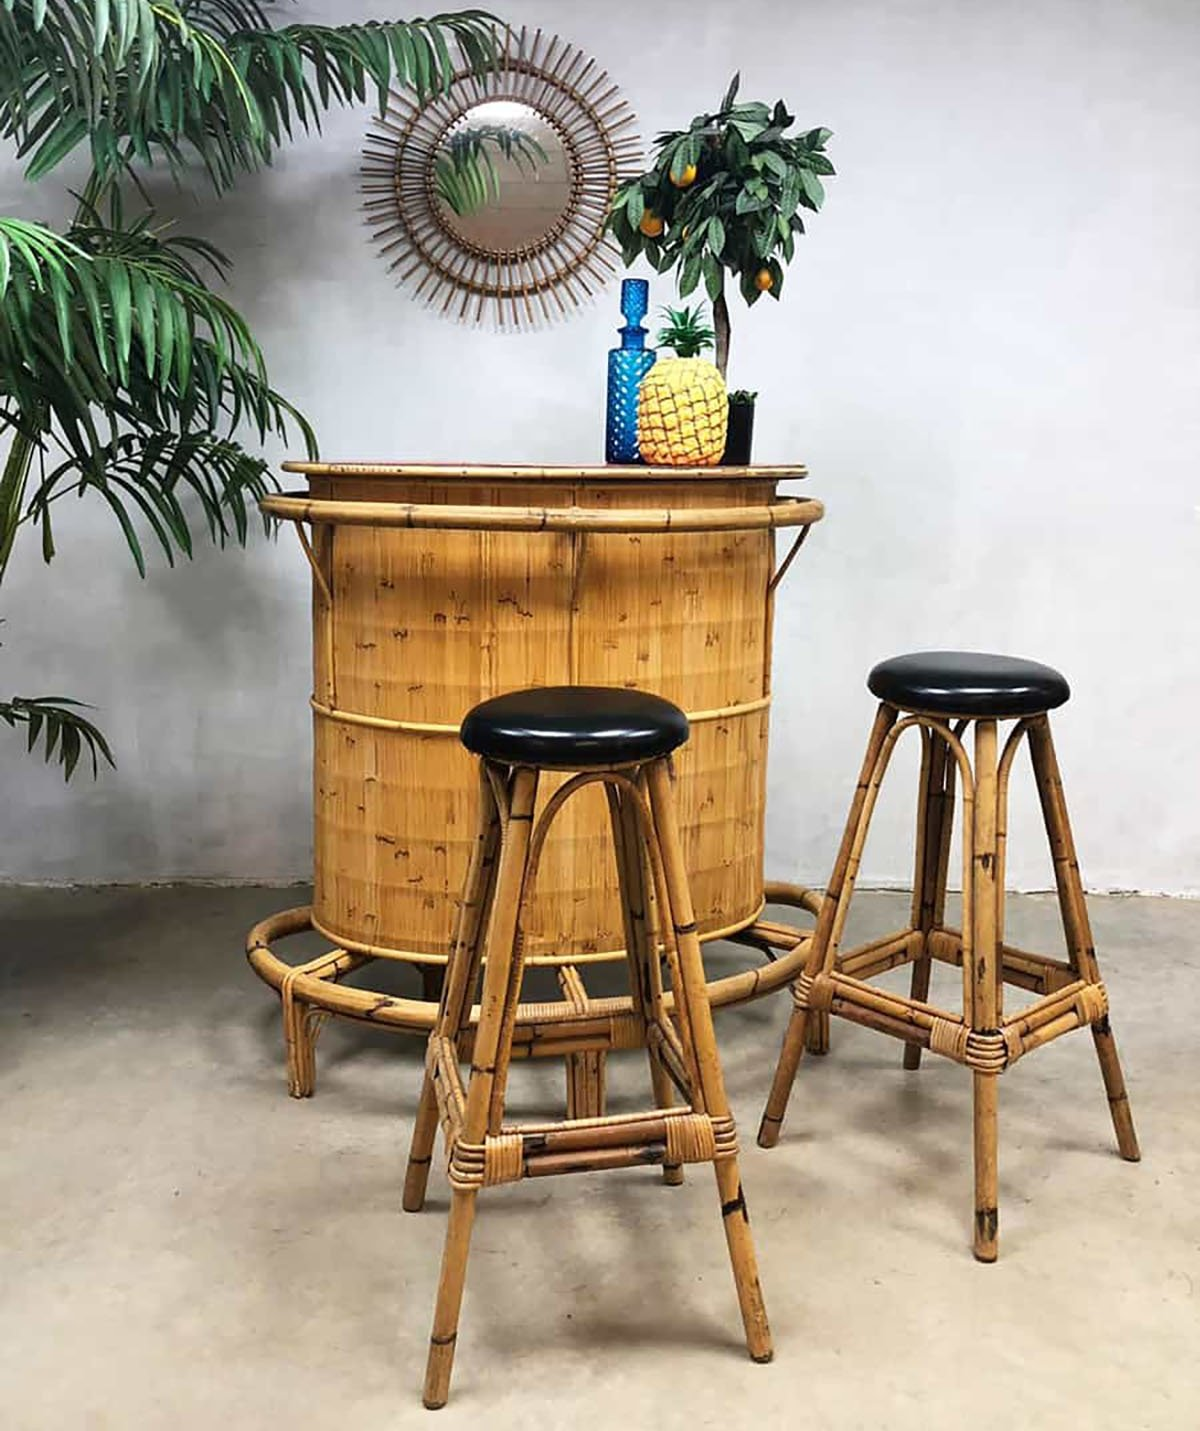 Magnificent Vintage Bamboo Rattan Tiki Bar With 2 Barstools 96428 Customarchery Wood Chair Design Ideas Customarcherynet